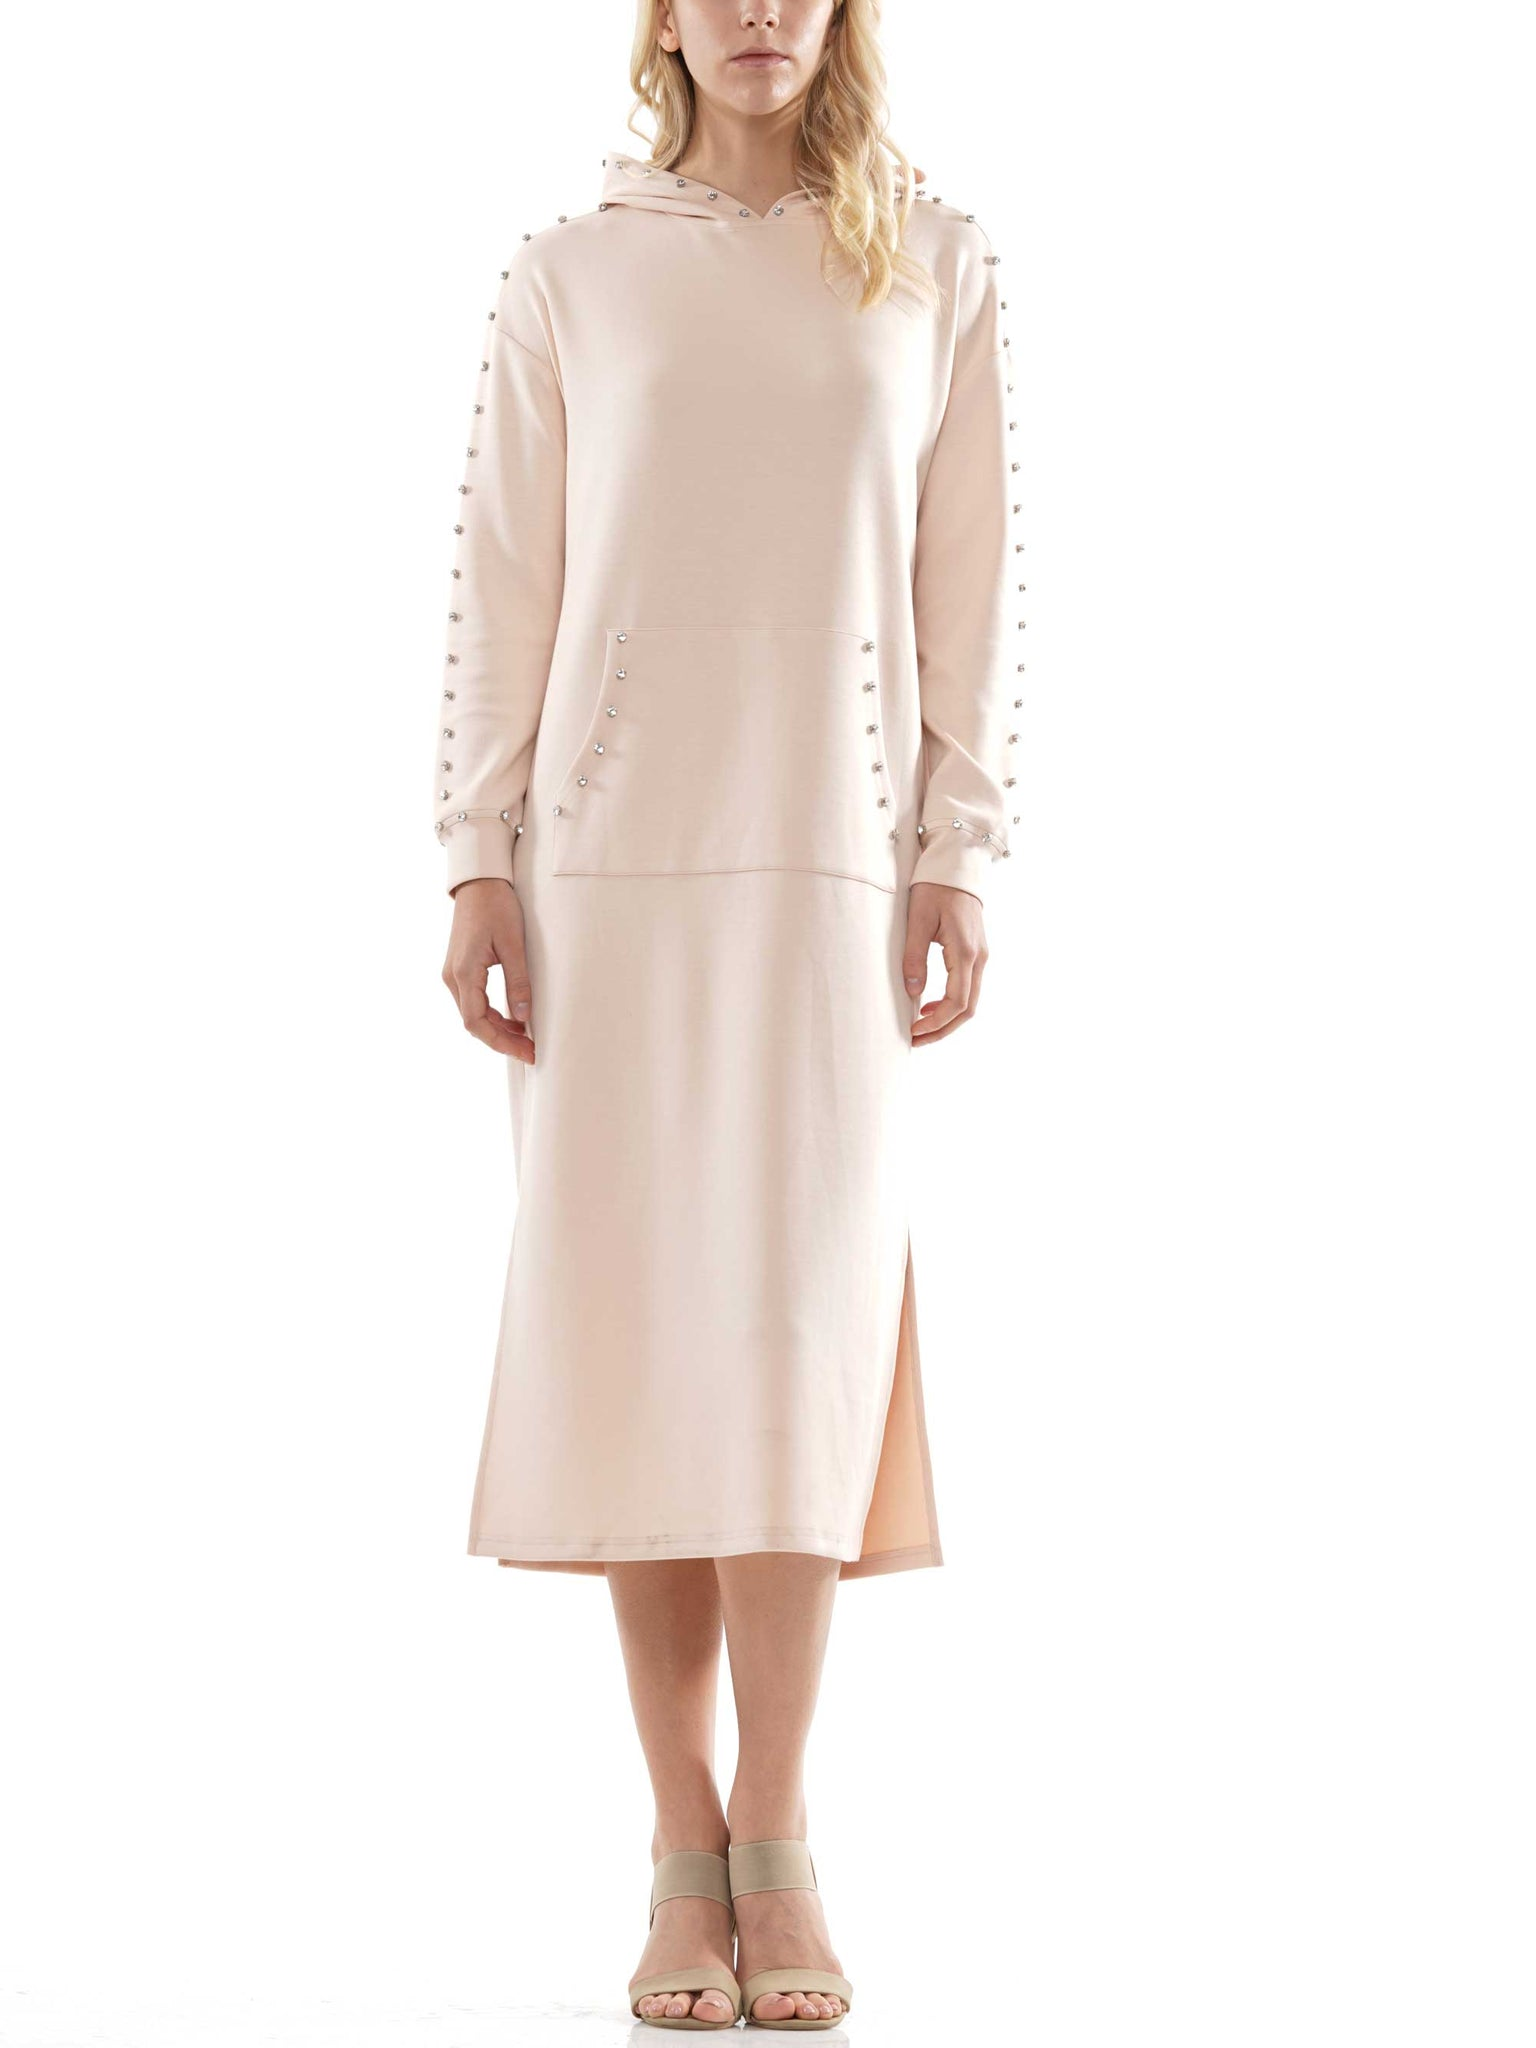 Light lyocell hooded pocket dress with gemstone